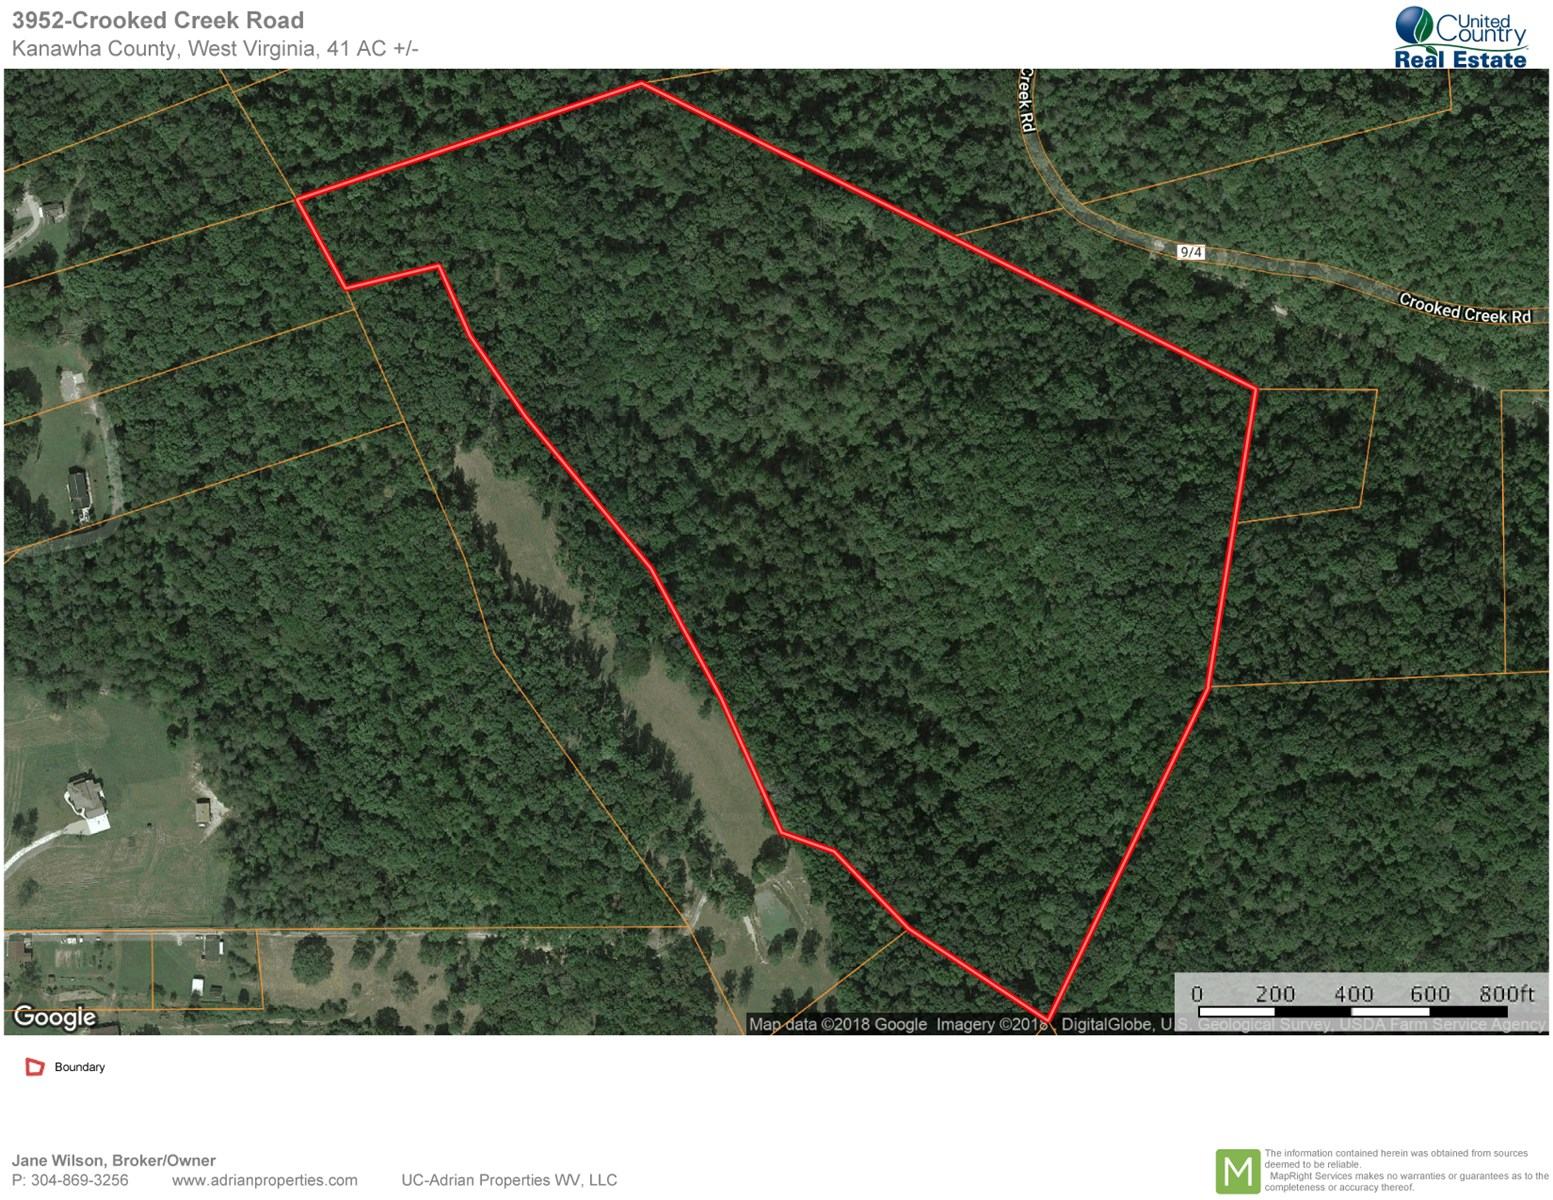 41 Ac. of Land for Residential, Recreational or Development